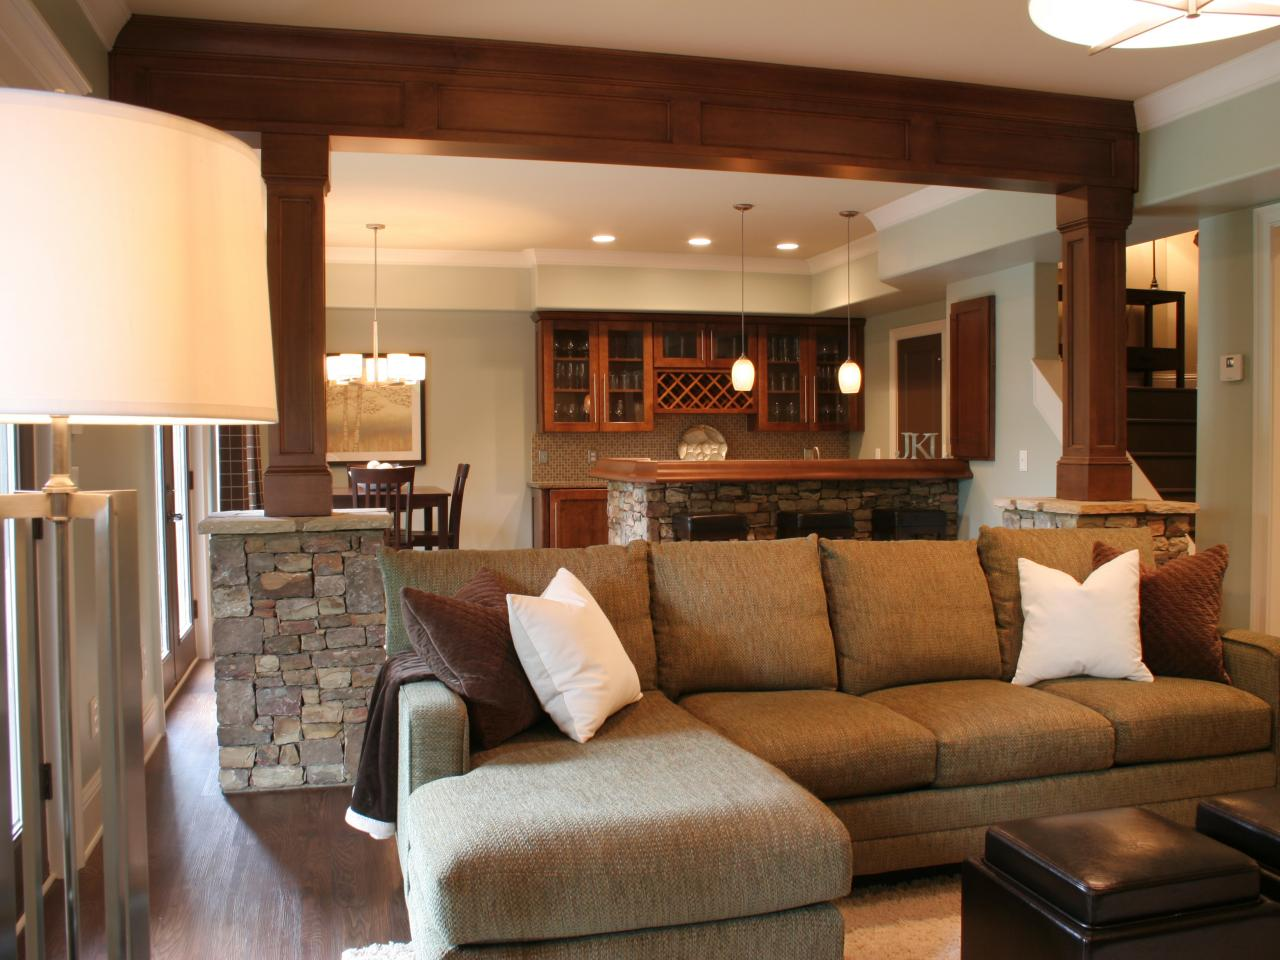 design basement ideas photo - 7